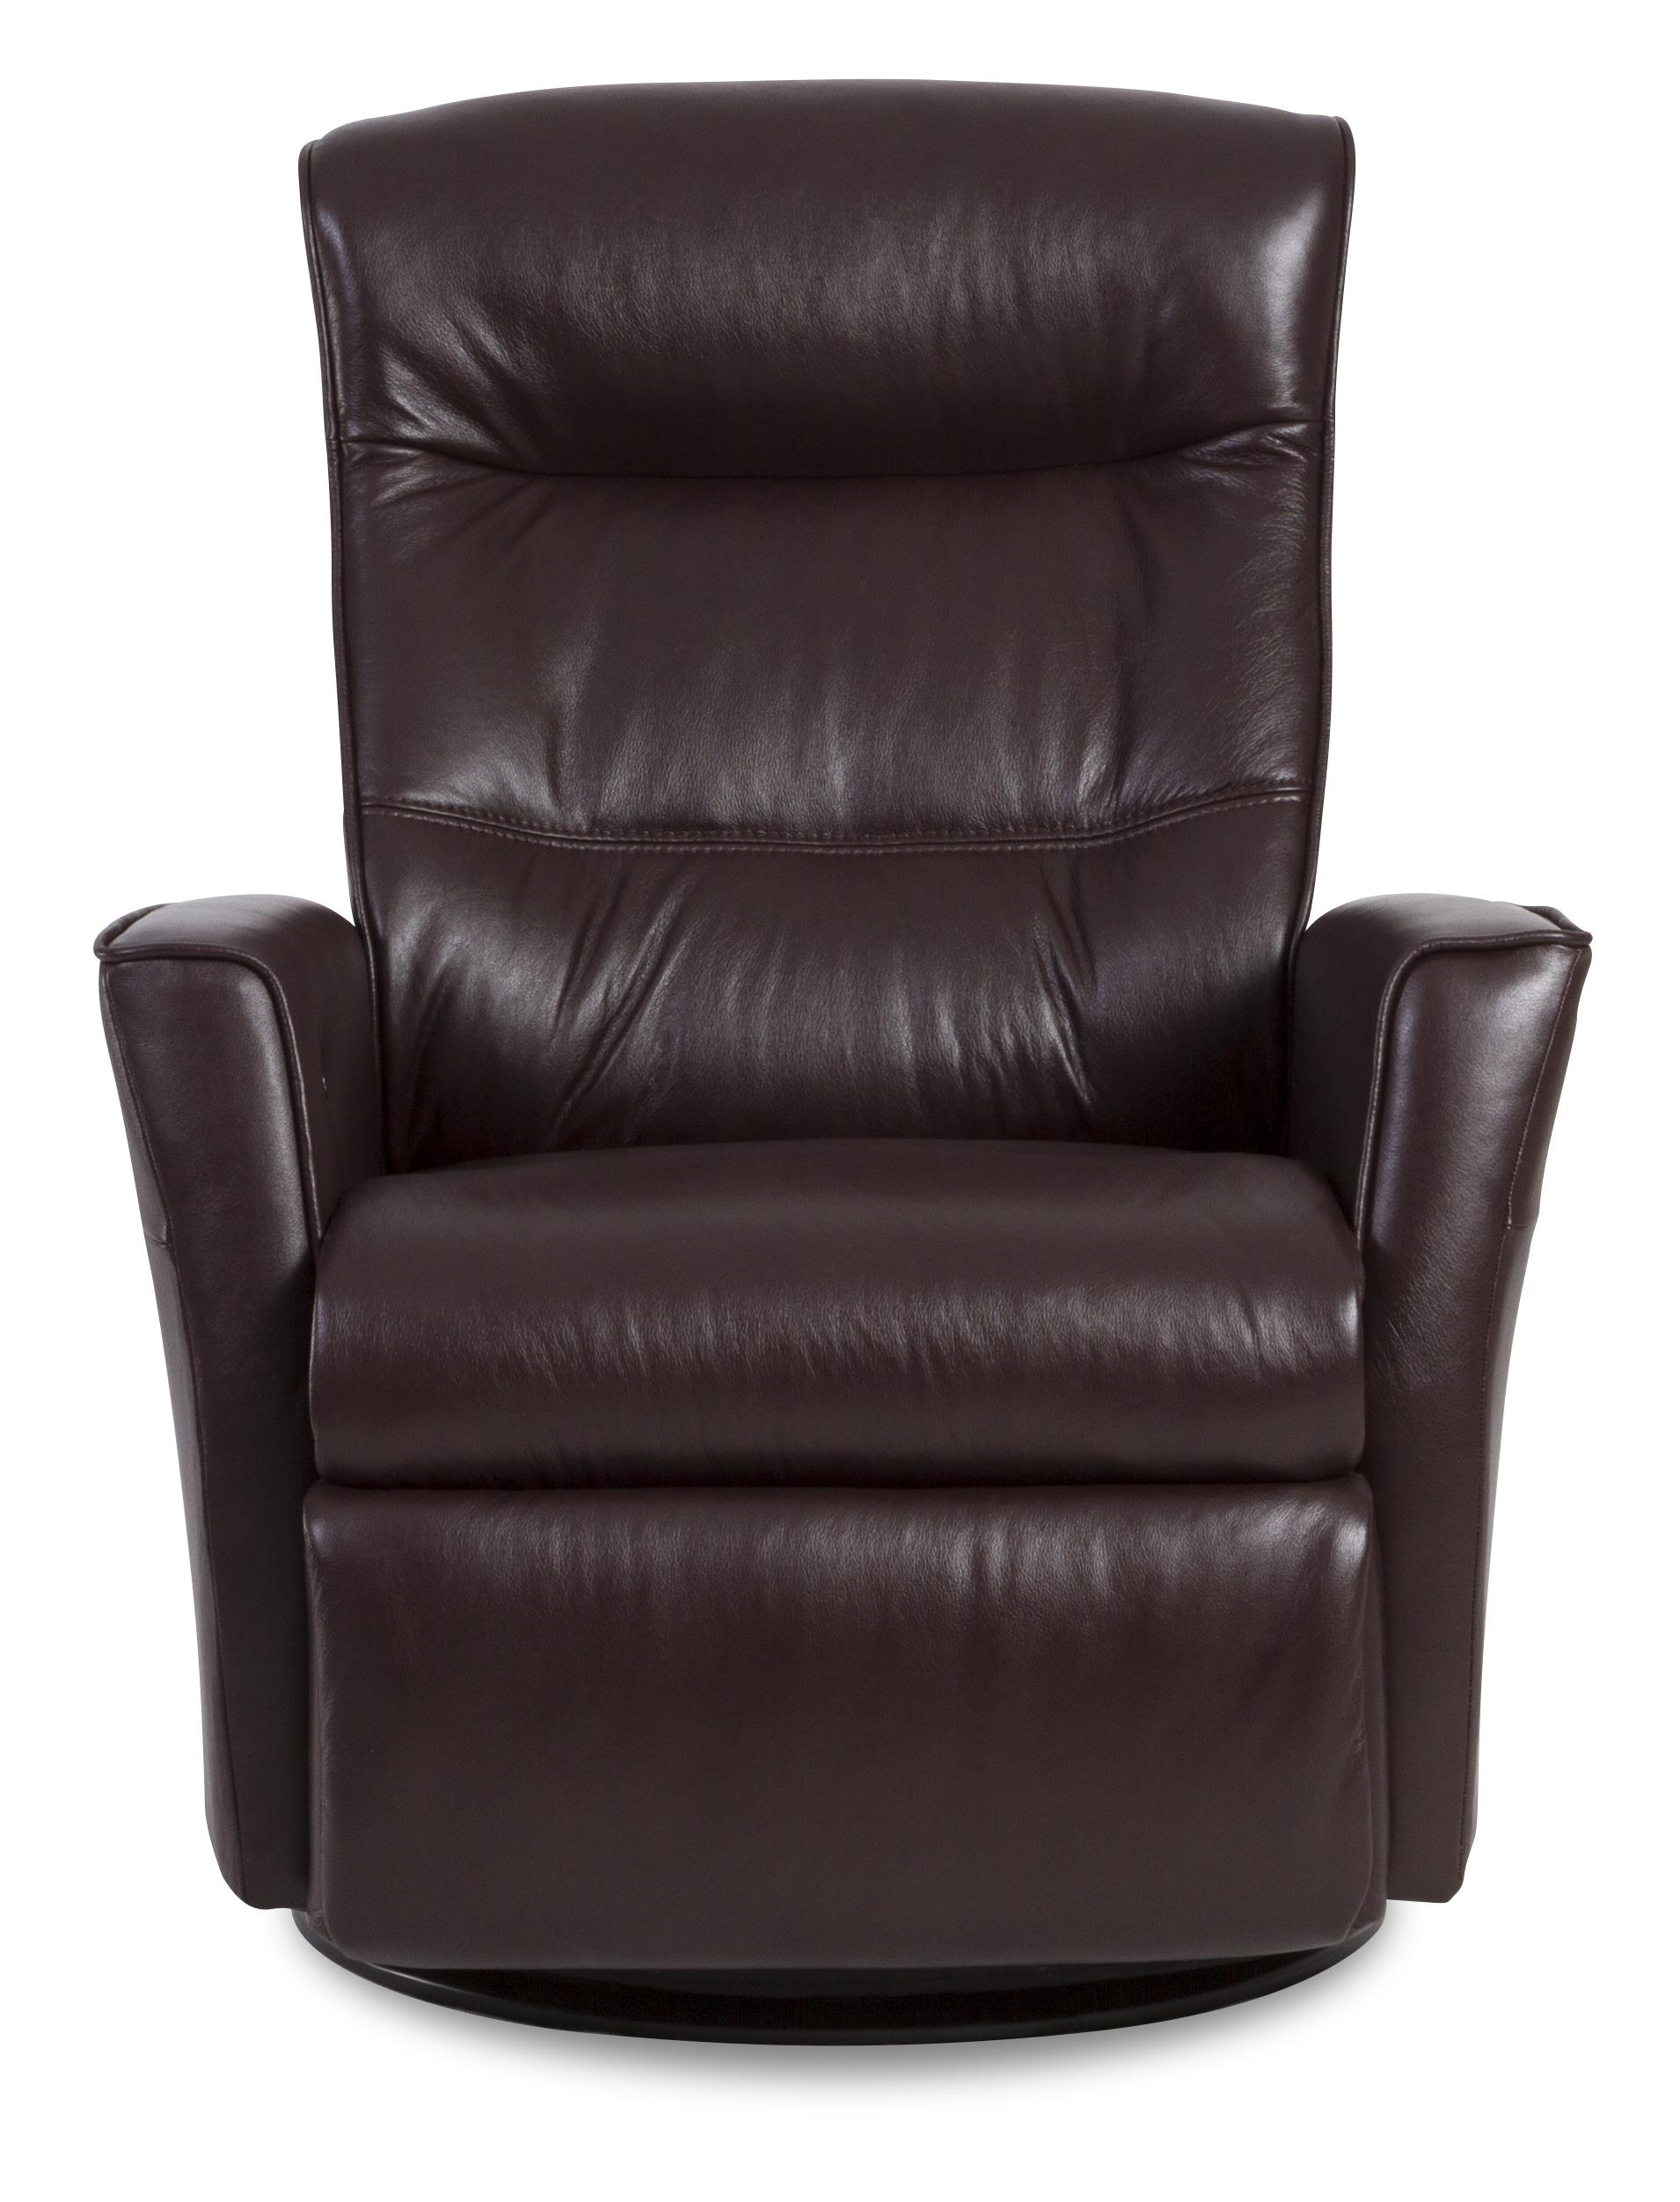 Img Norway Crown Large Size Relaxer With Power Recline